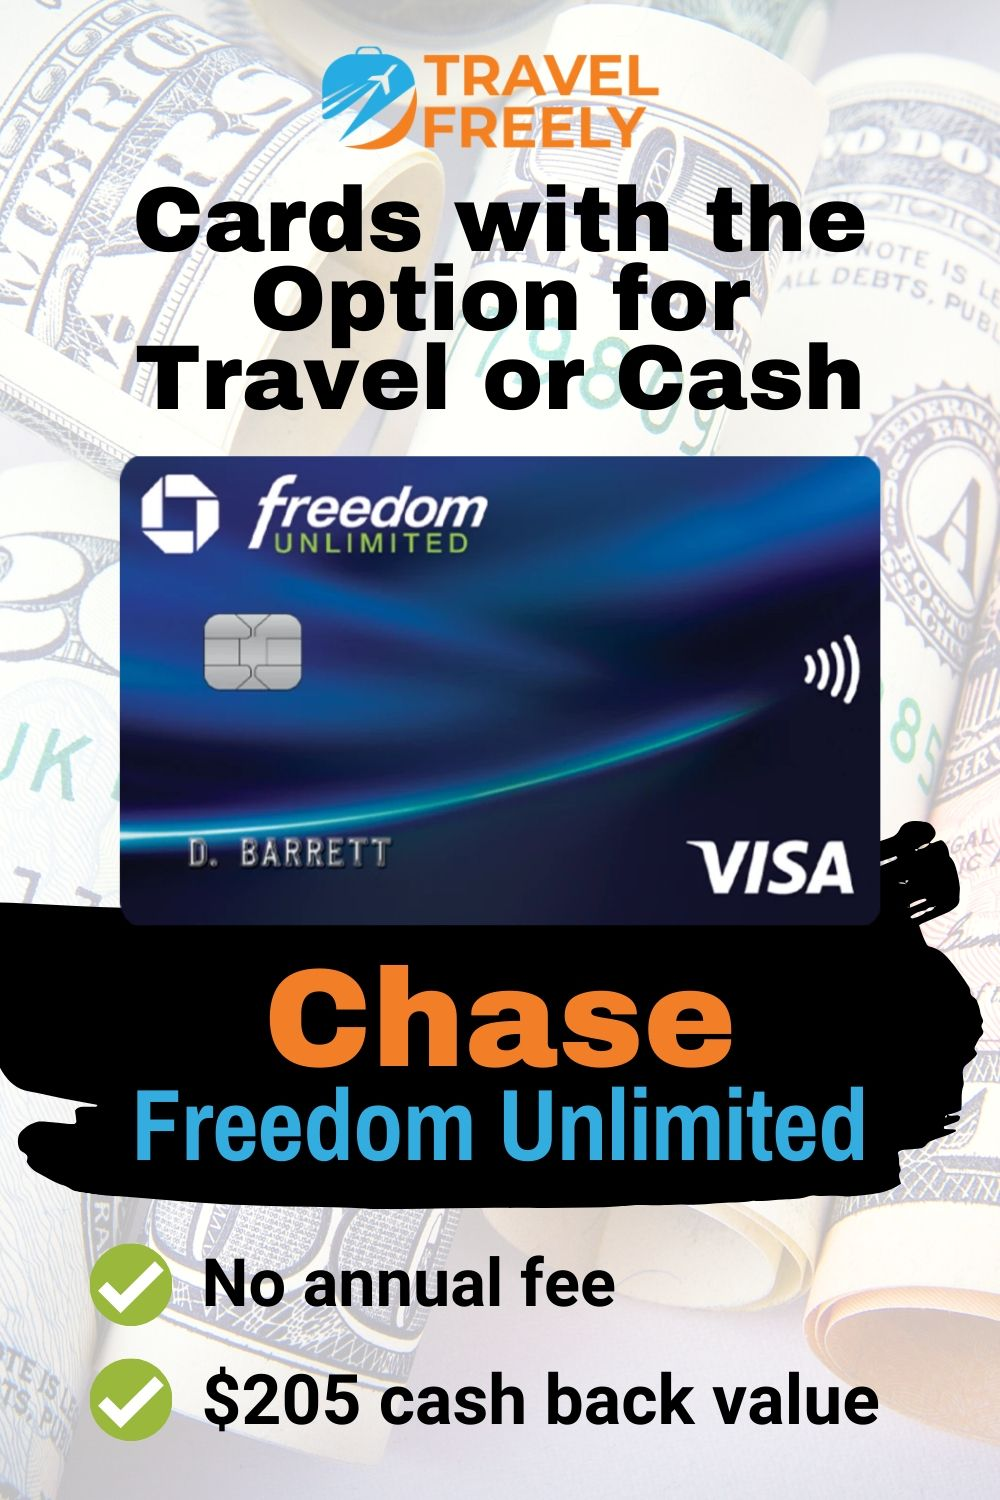 370 Best Of Travel Freely Ideas Best Credit Cards Personal Finance Free Travel